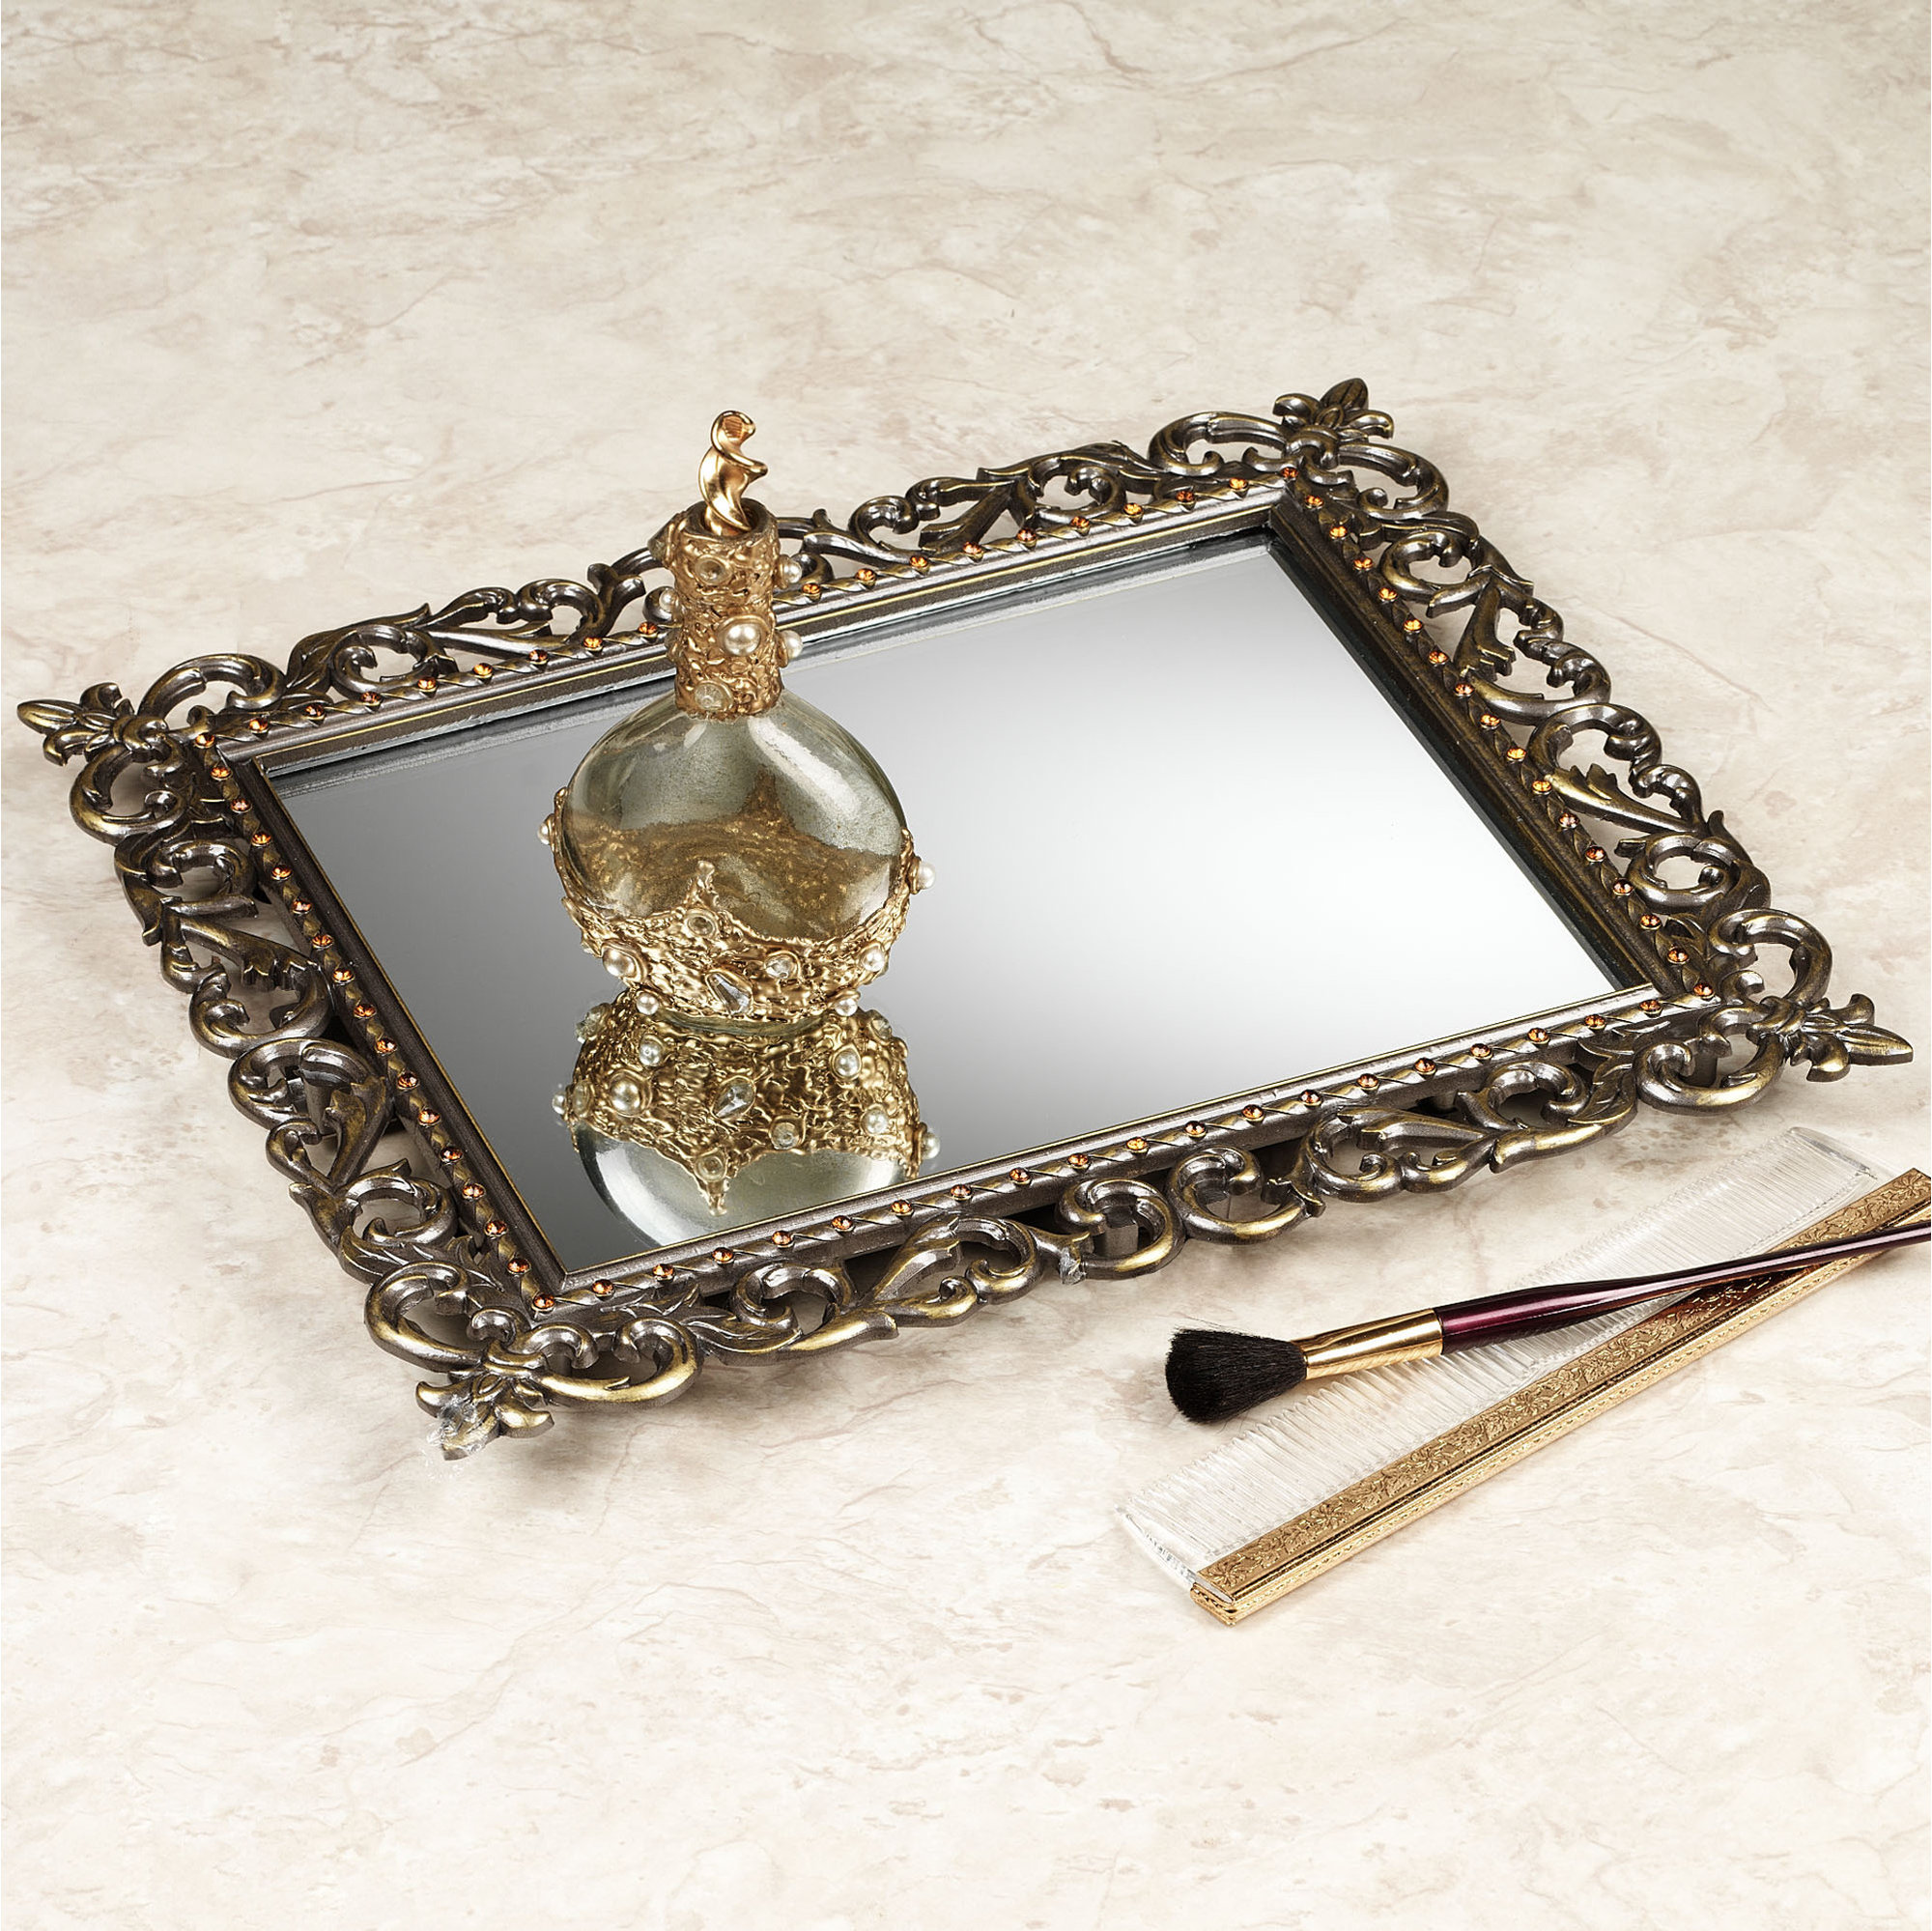 Captivating mirrored vanity tray